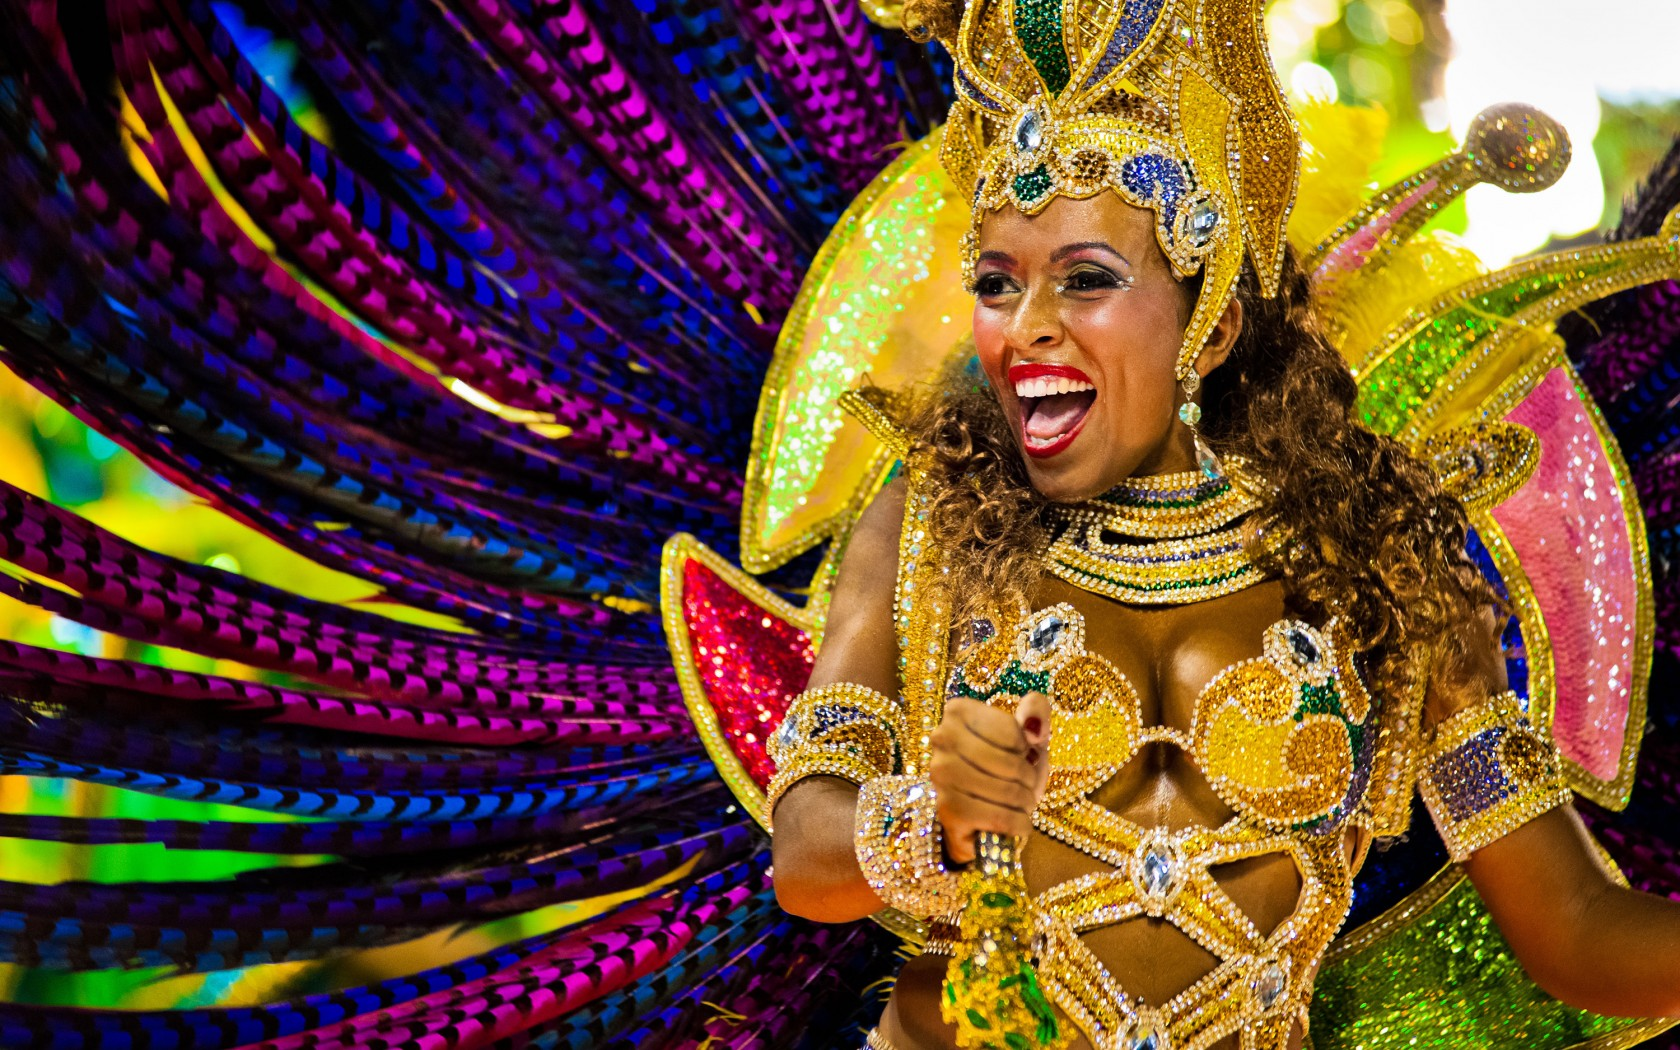 The Carnival in Rio Wallpapers High Quality | Download Free